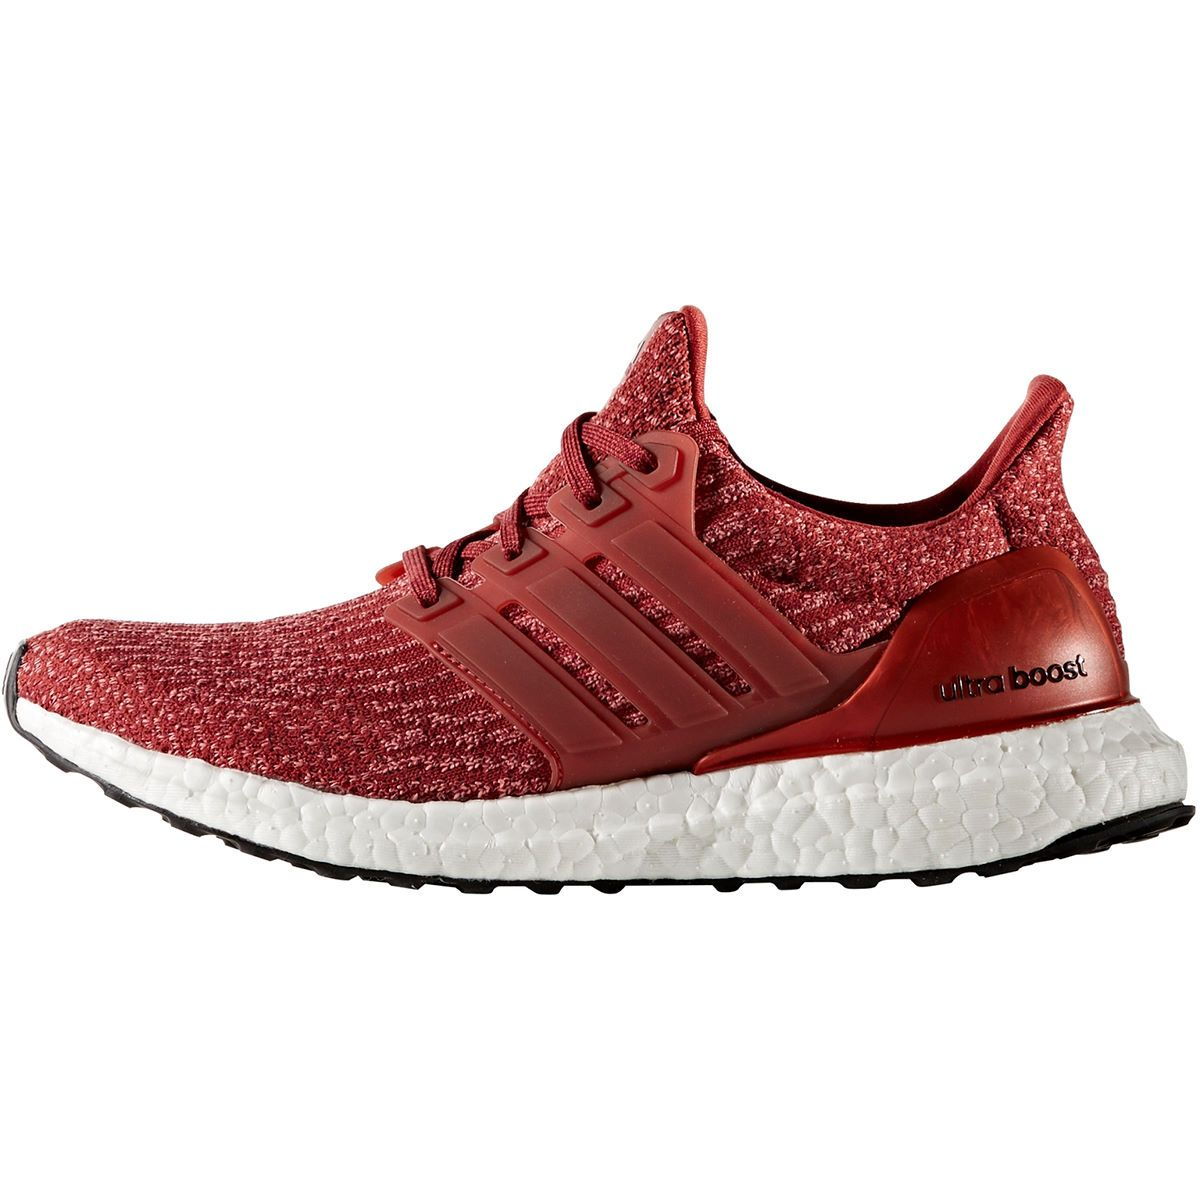 detailed look 188c7 ec2ad wiggle.com | Adidas Women's Ultra Boost Shoes (AW16 ...